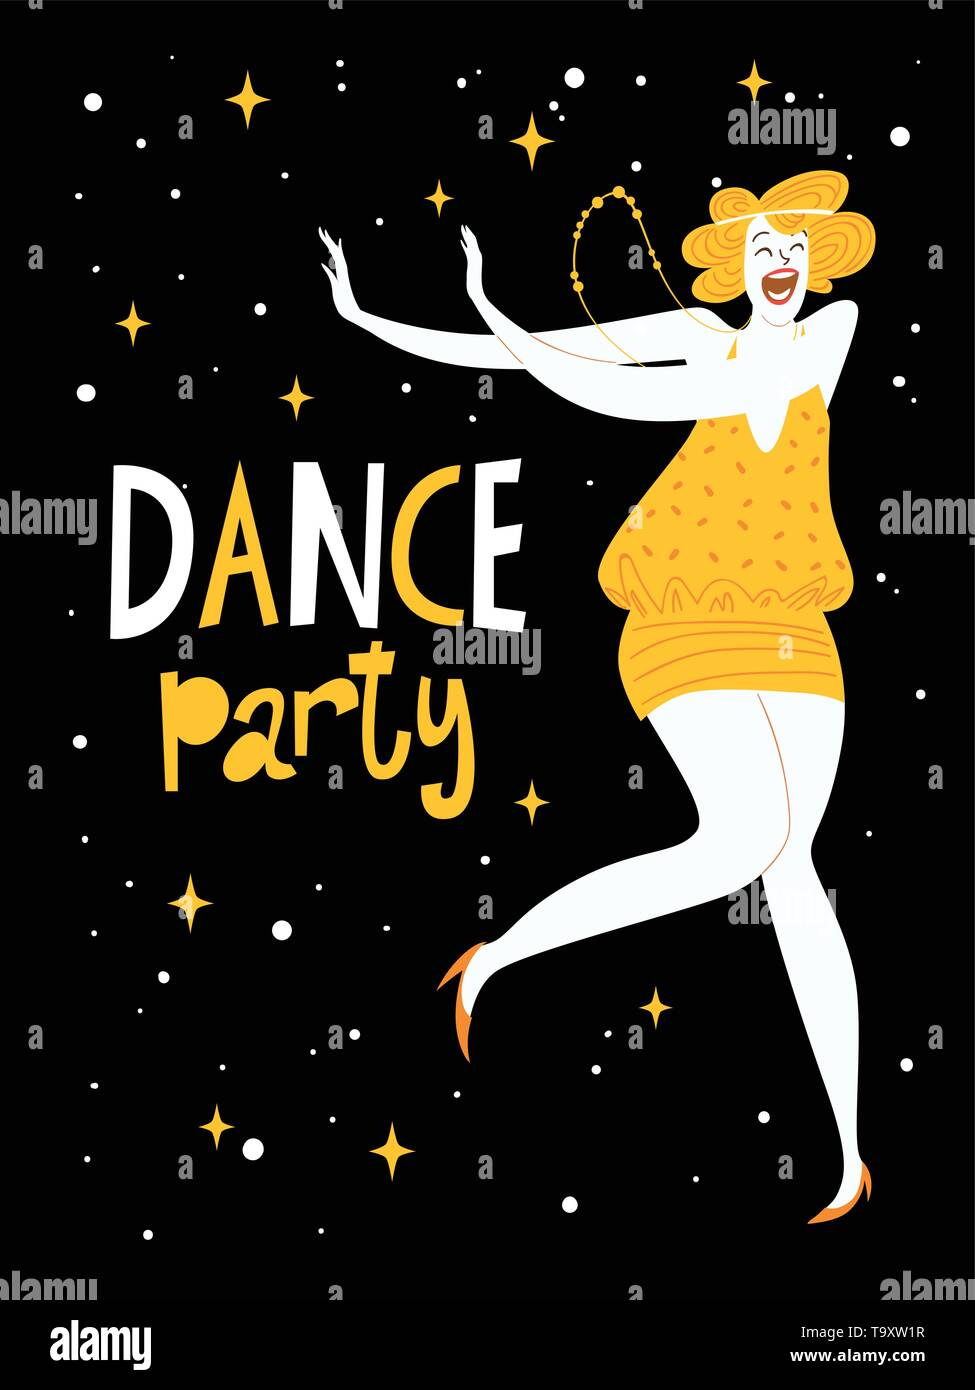 Dance party design for invitation or poster - Stock Vector